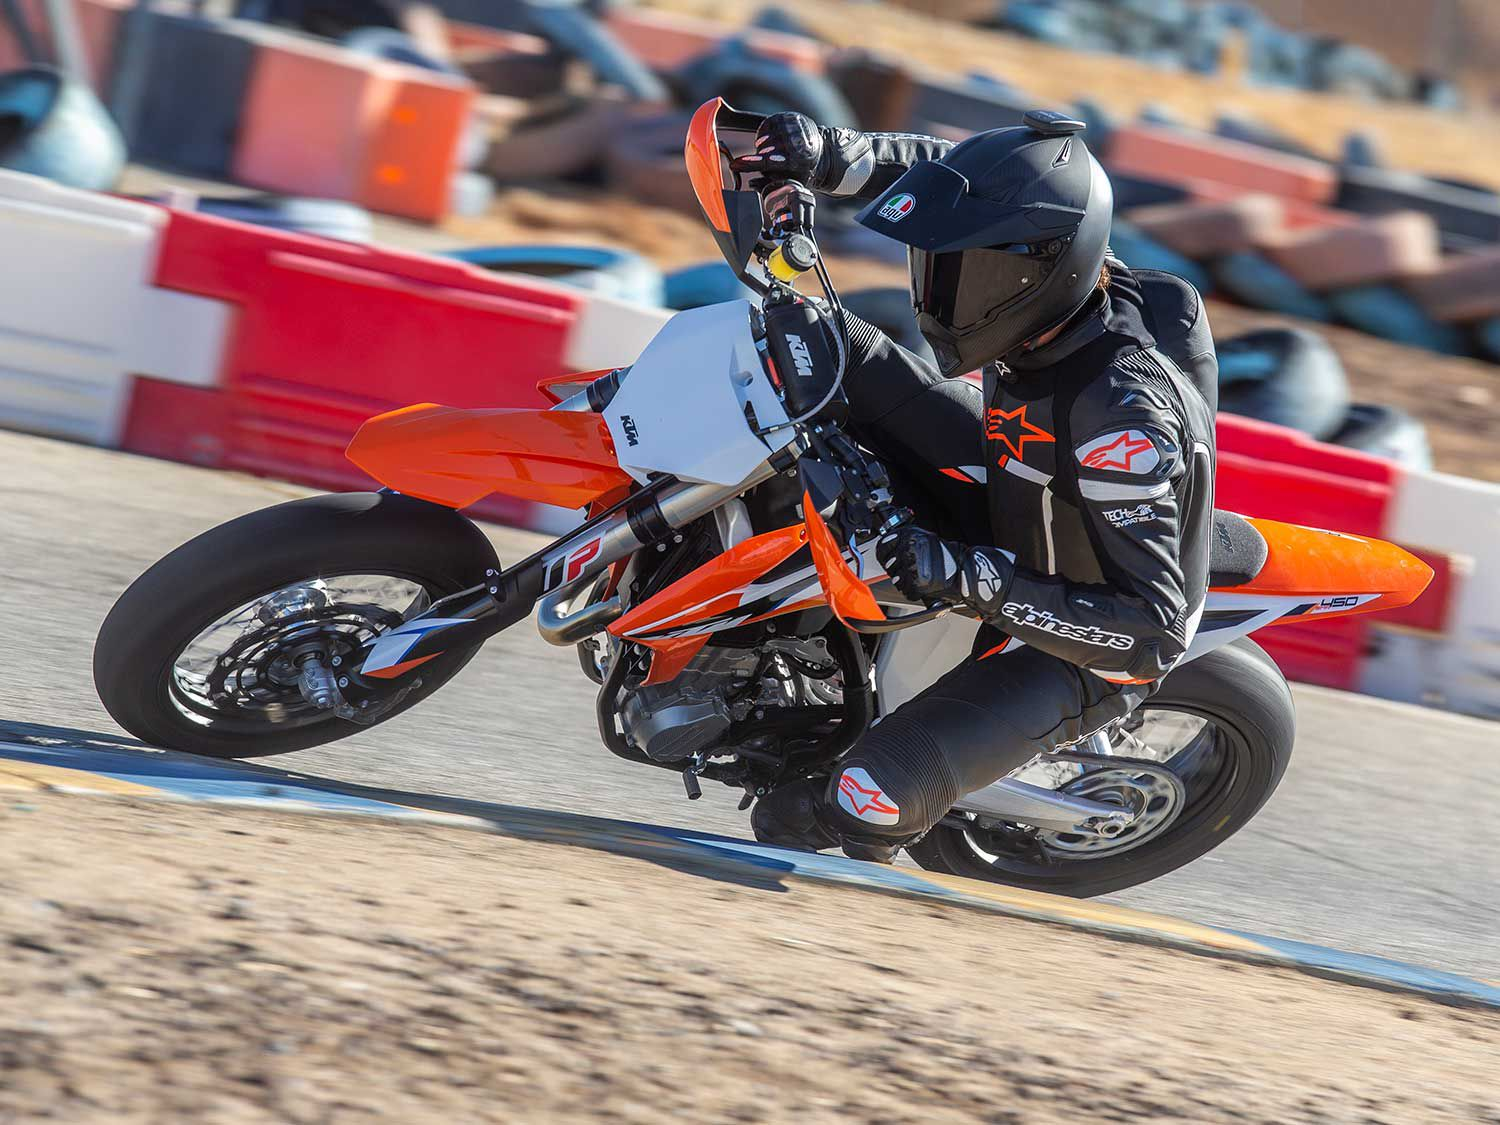 You'll be hard pressed to ride a more maneuverable sport-oriented road motorcycle compared to the 232-pound 450 SMR.